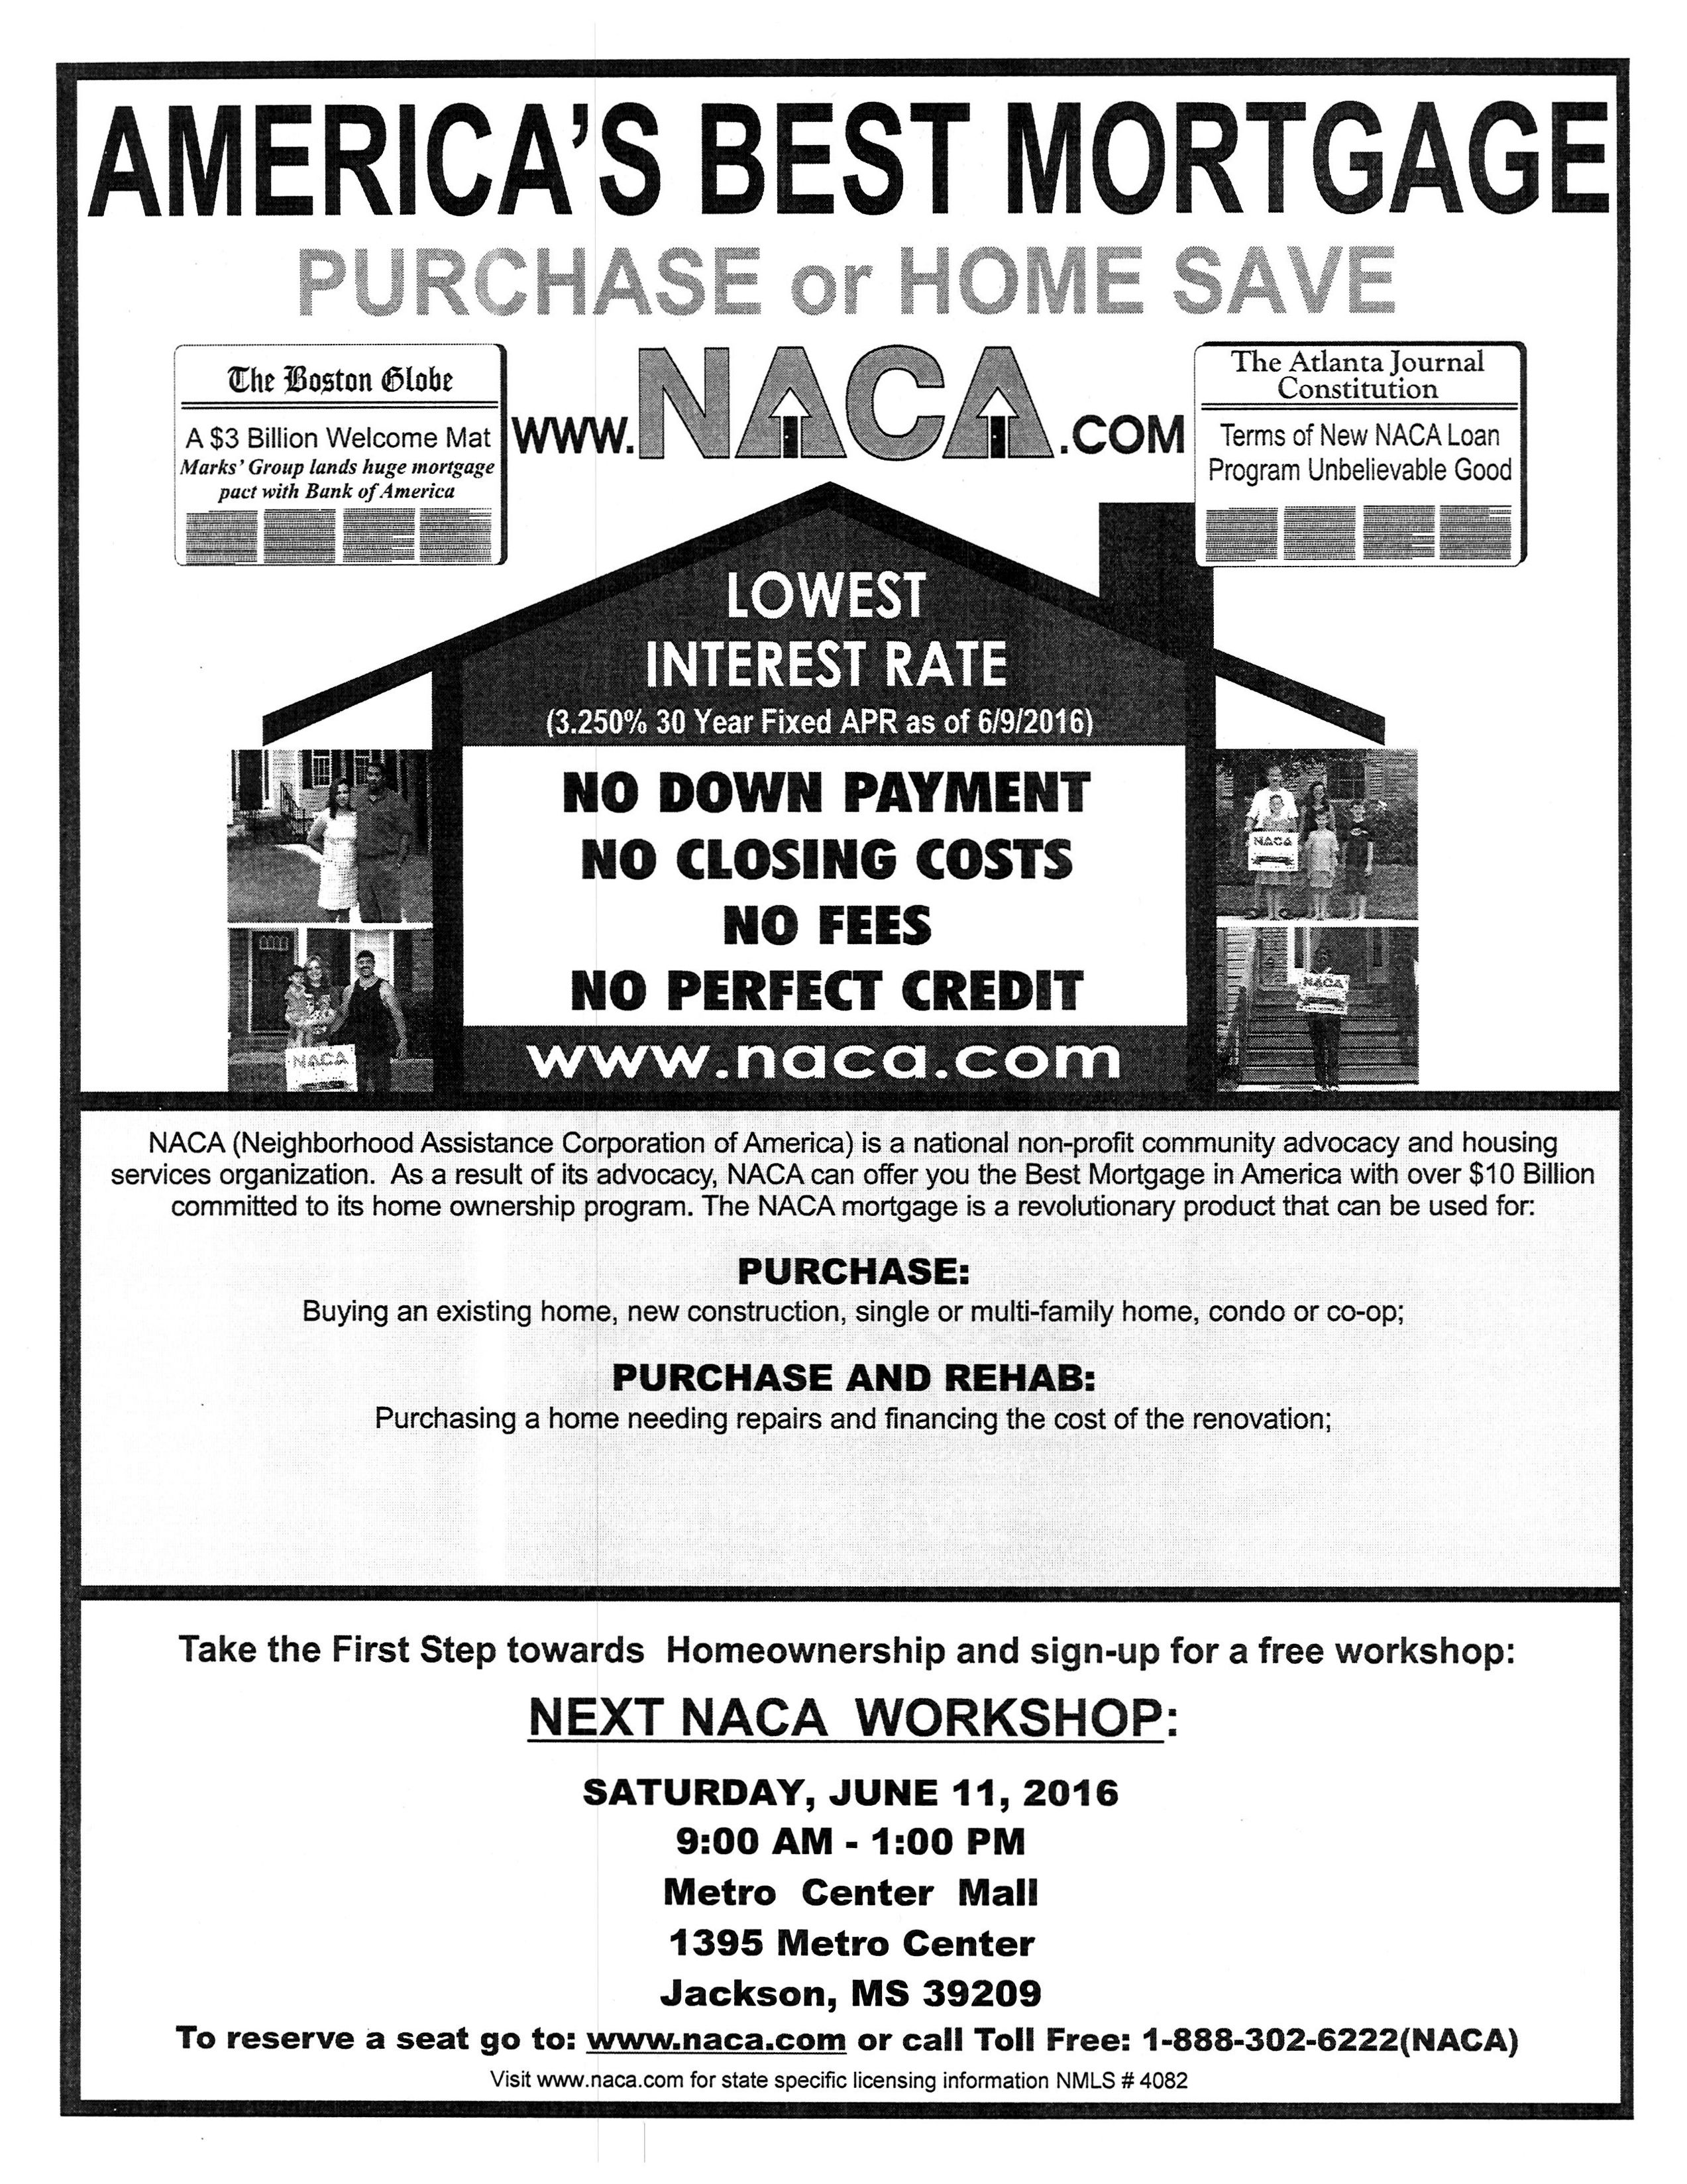 Jackson Ms Join Us This Saturday For Our Americandream Workshop At The Metro Center Mall The Workshop Is Free Closing Costs Home Ownership Atlanta Journal